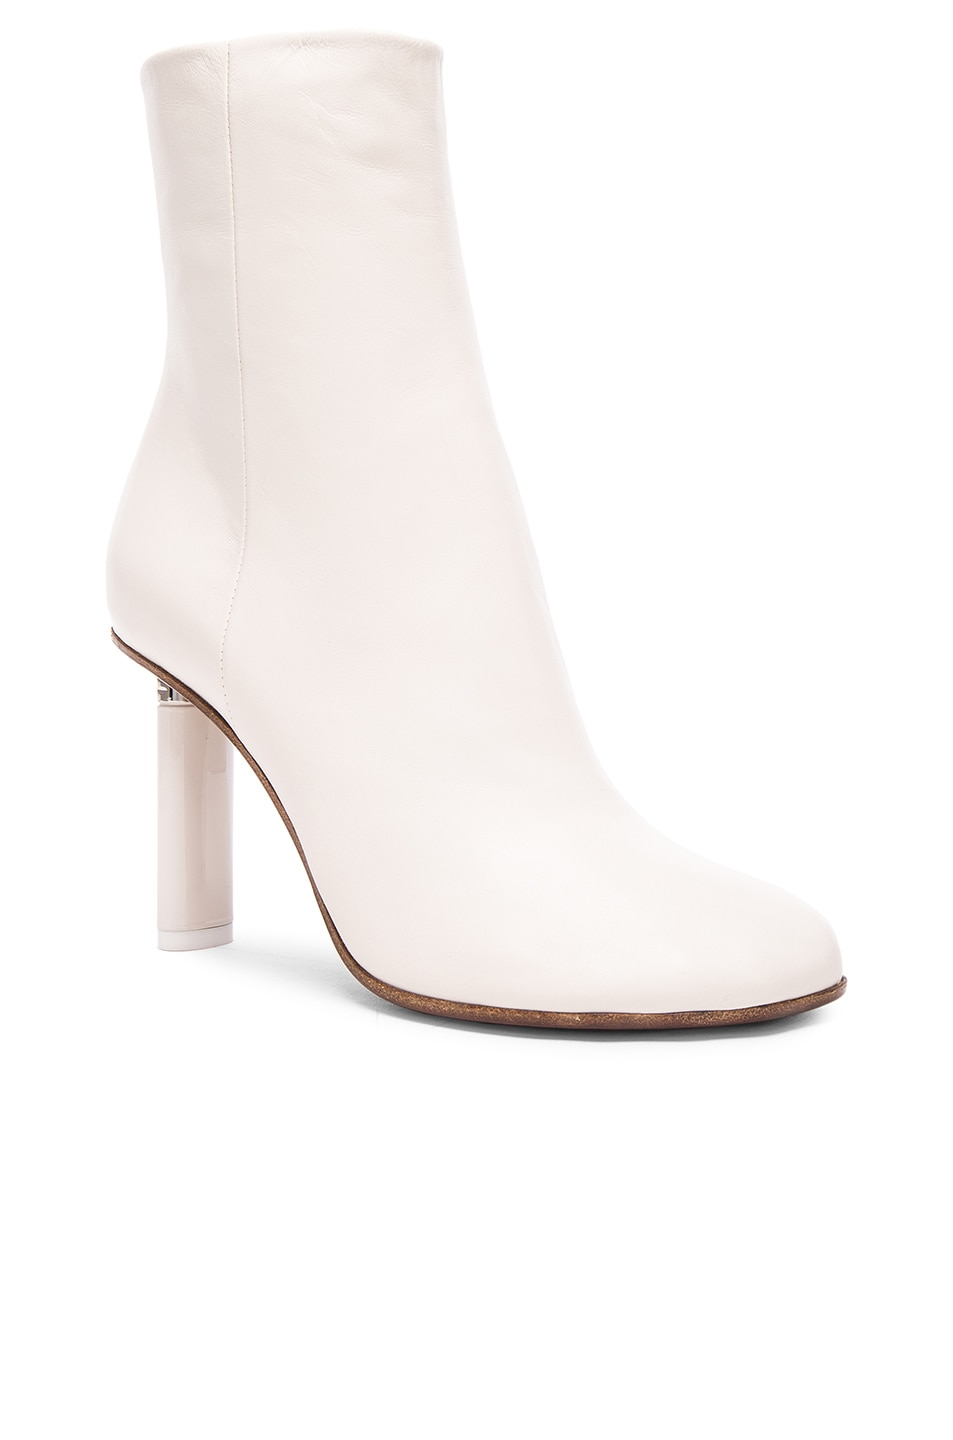 Vetements Leather Ankle Boots 9AGN6iprOe